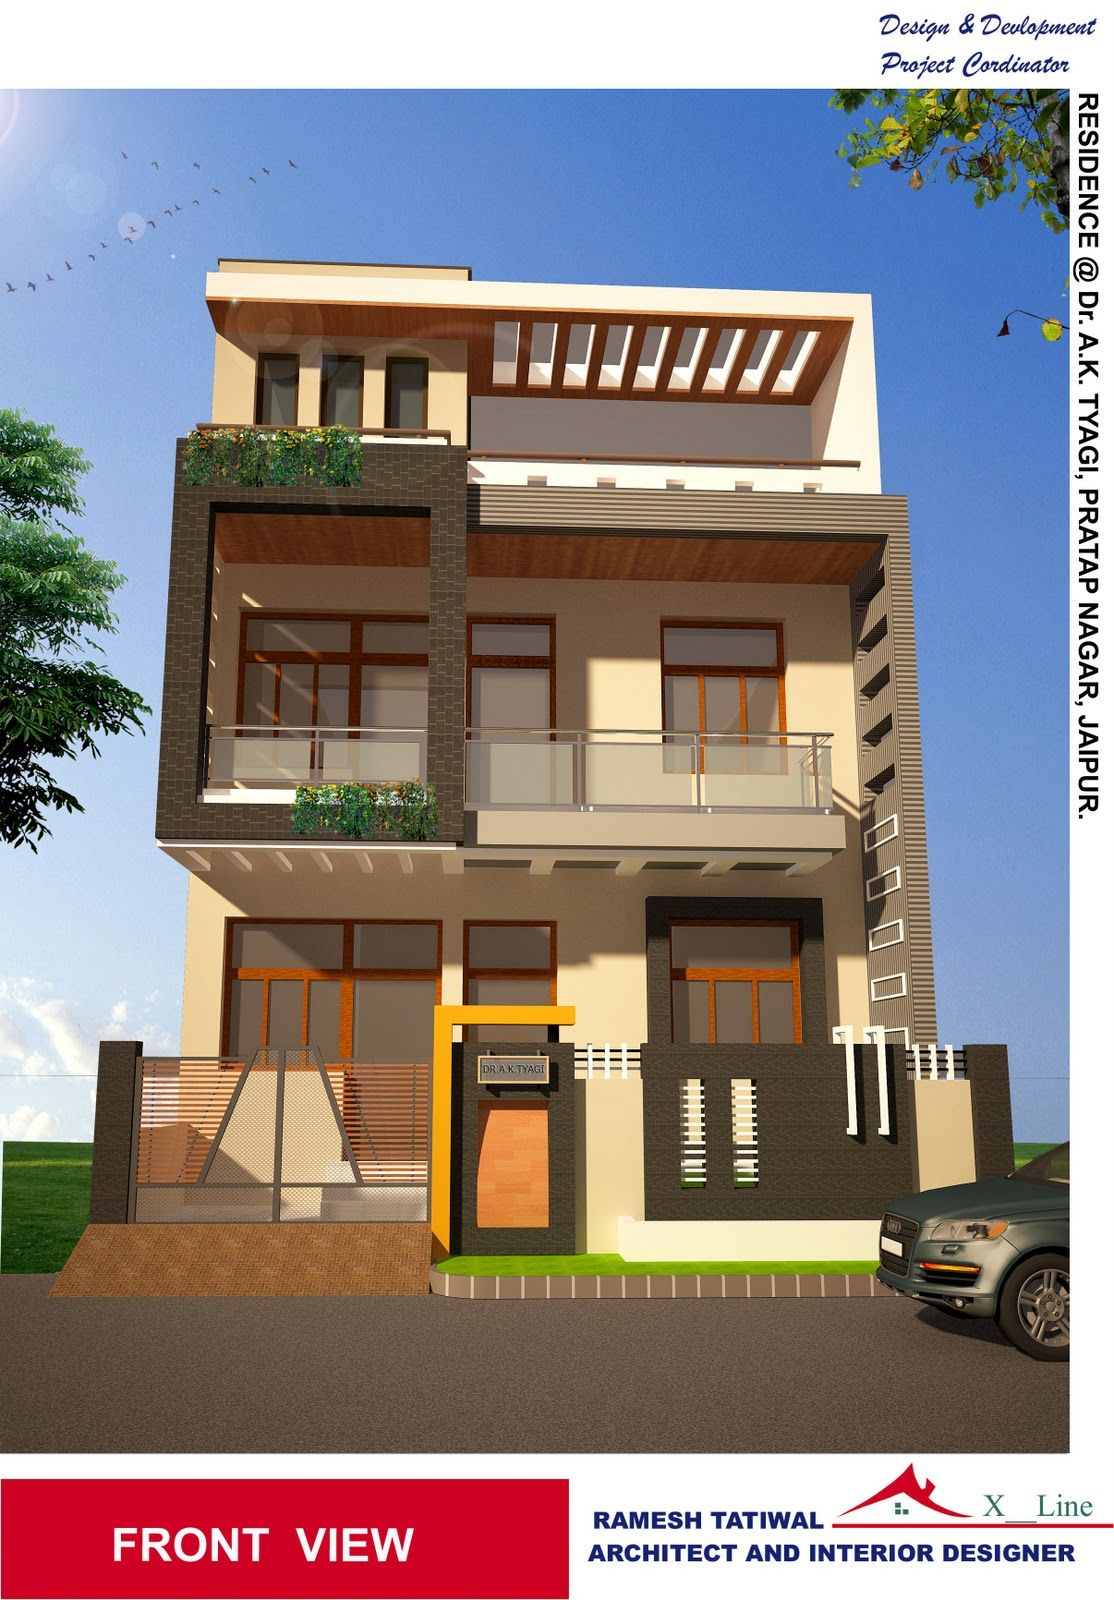 Housedesigns modern indian home architecture design from for Indian house design architect